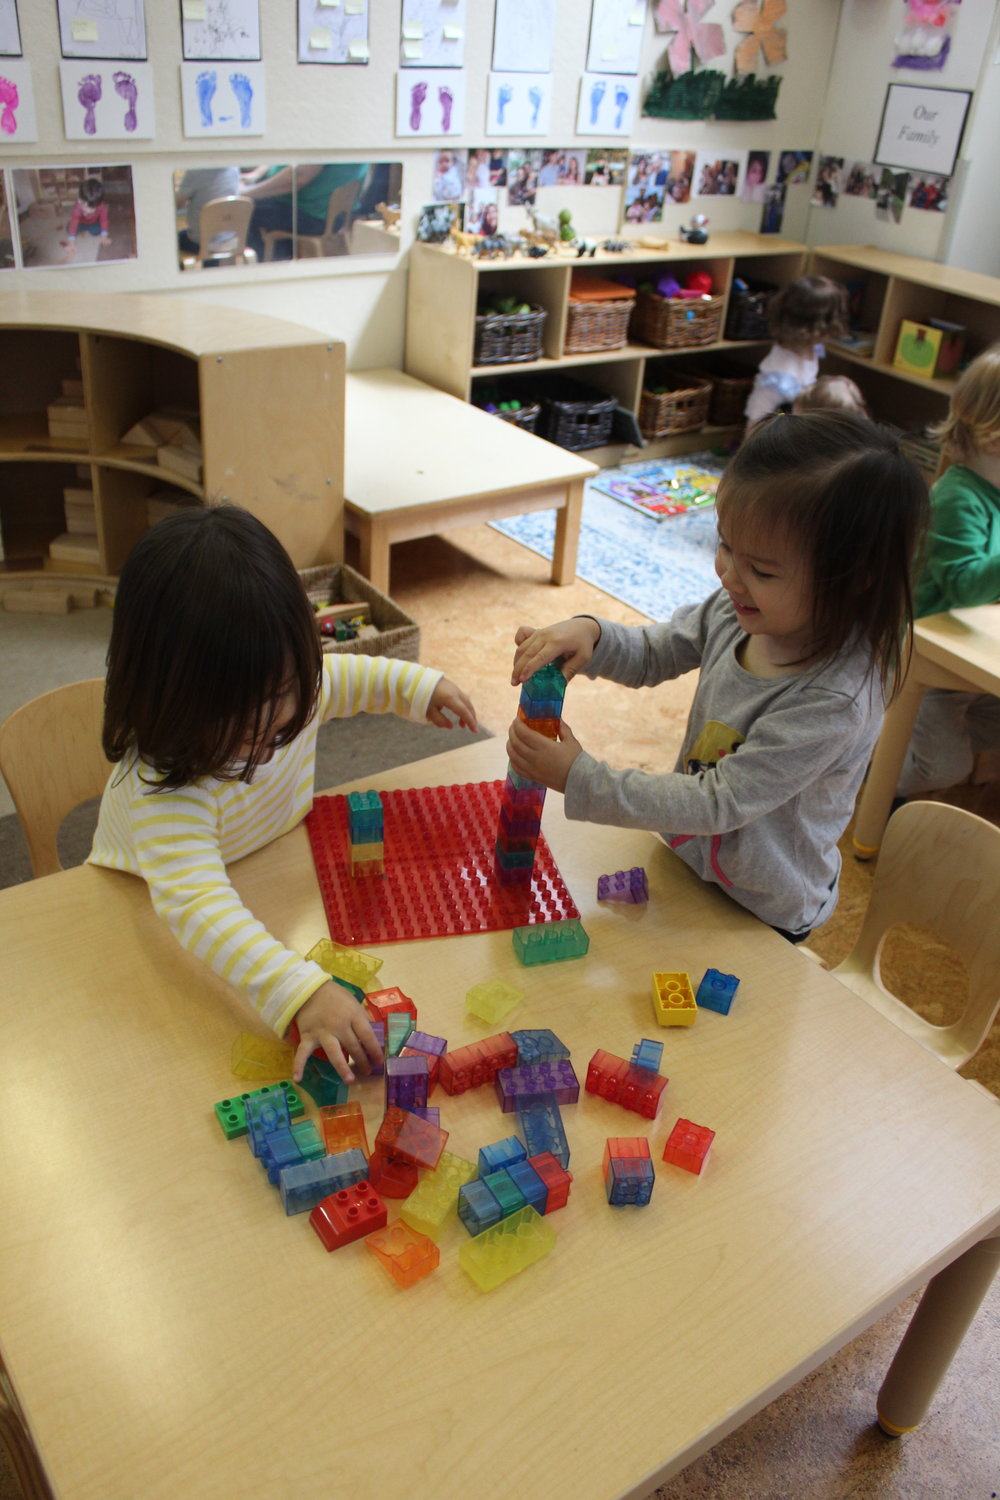 Lego Block promotes color recognition, counting, one to one correspondence, and fine motor skills.   Creativity and imagination also develop as children engage in connecting and building.    As young toddlers play, they build their physical skills, learn concepts, and apply thinking skills. As teachers, we encourage children to explore with toys and manipulative.     We promote socialization by encouraging children to play with one another and we create activities that enable children to work collaboratively.